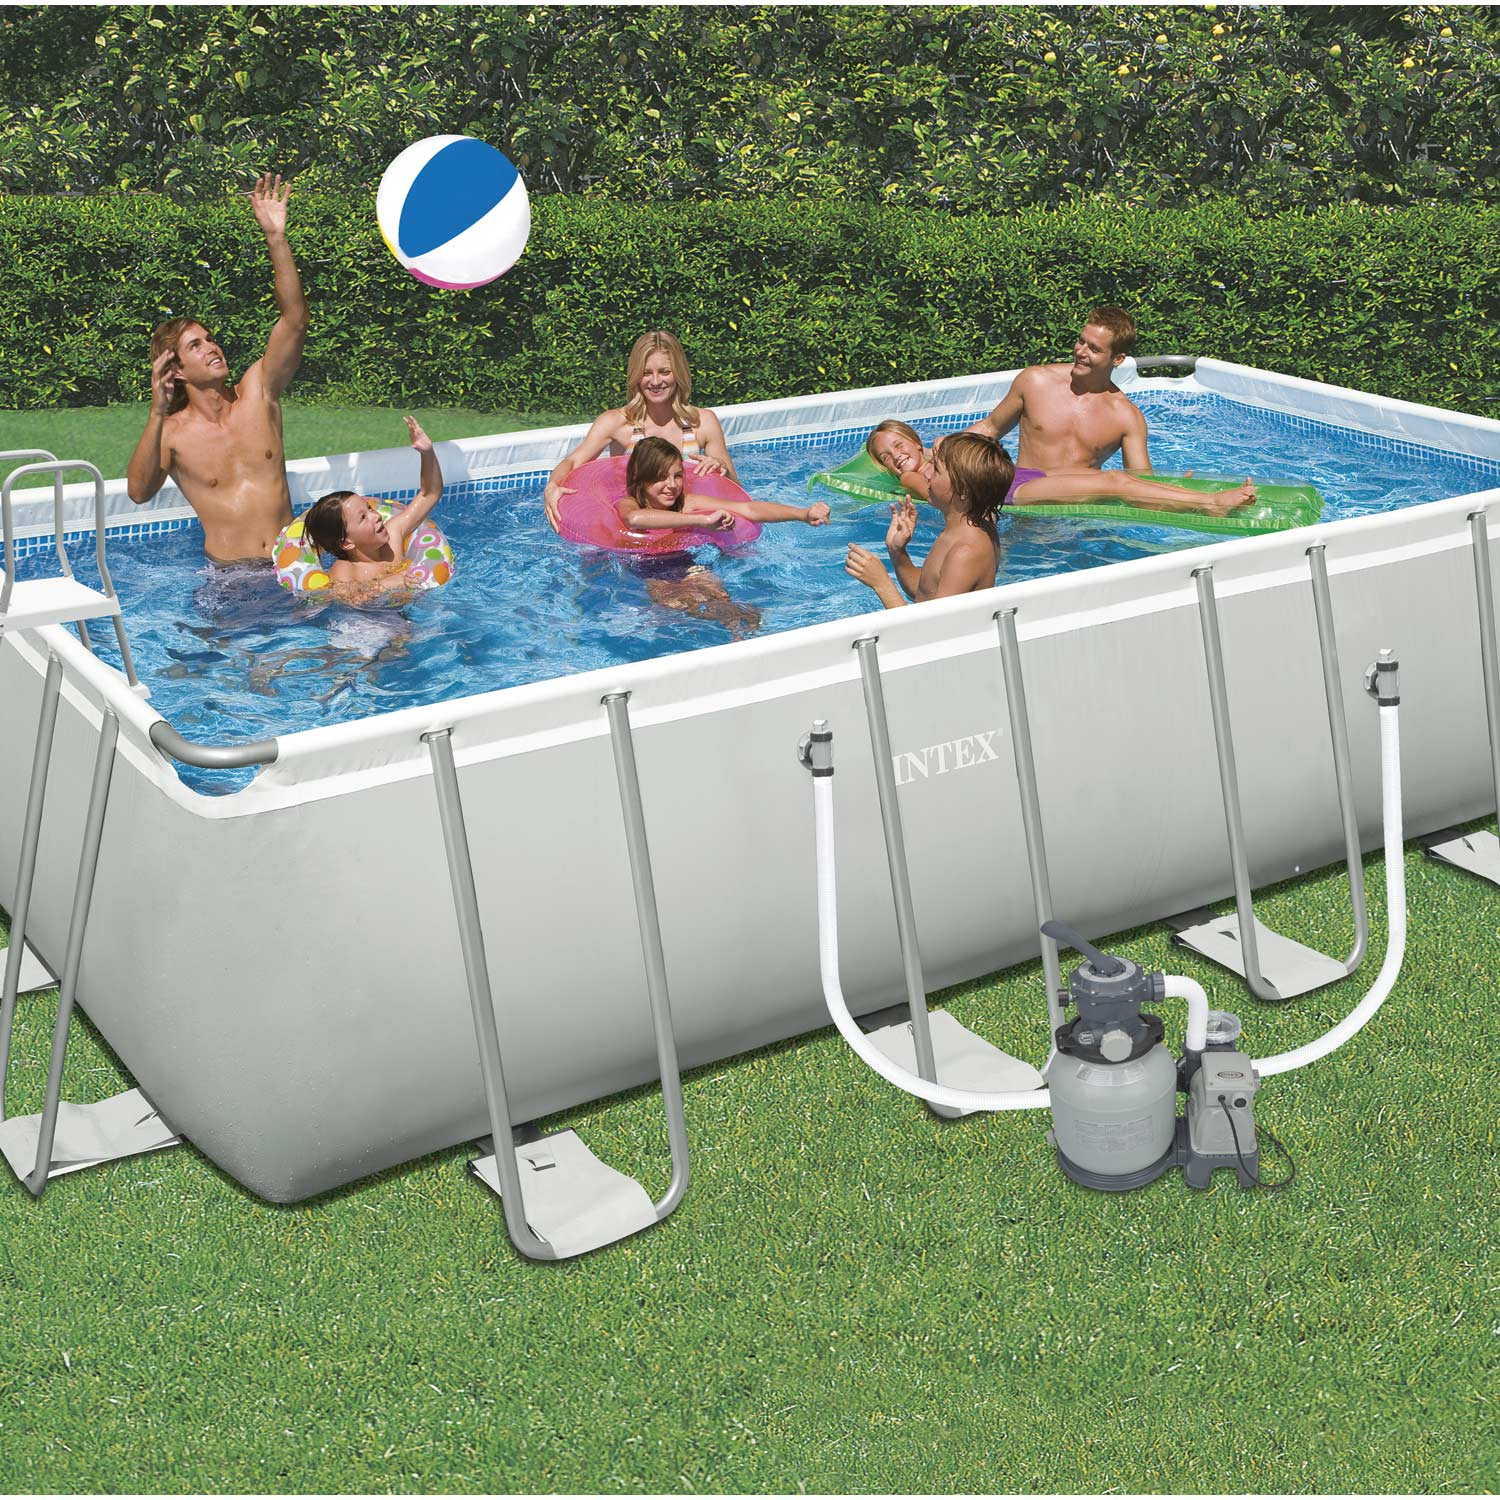 Piscine hors sol autoportante tubulaire ultra silver intex for Taxe piscine hors sol